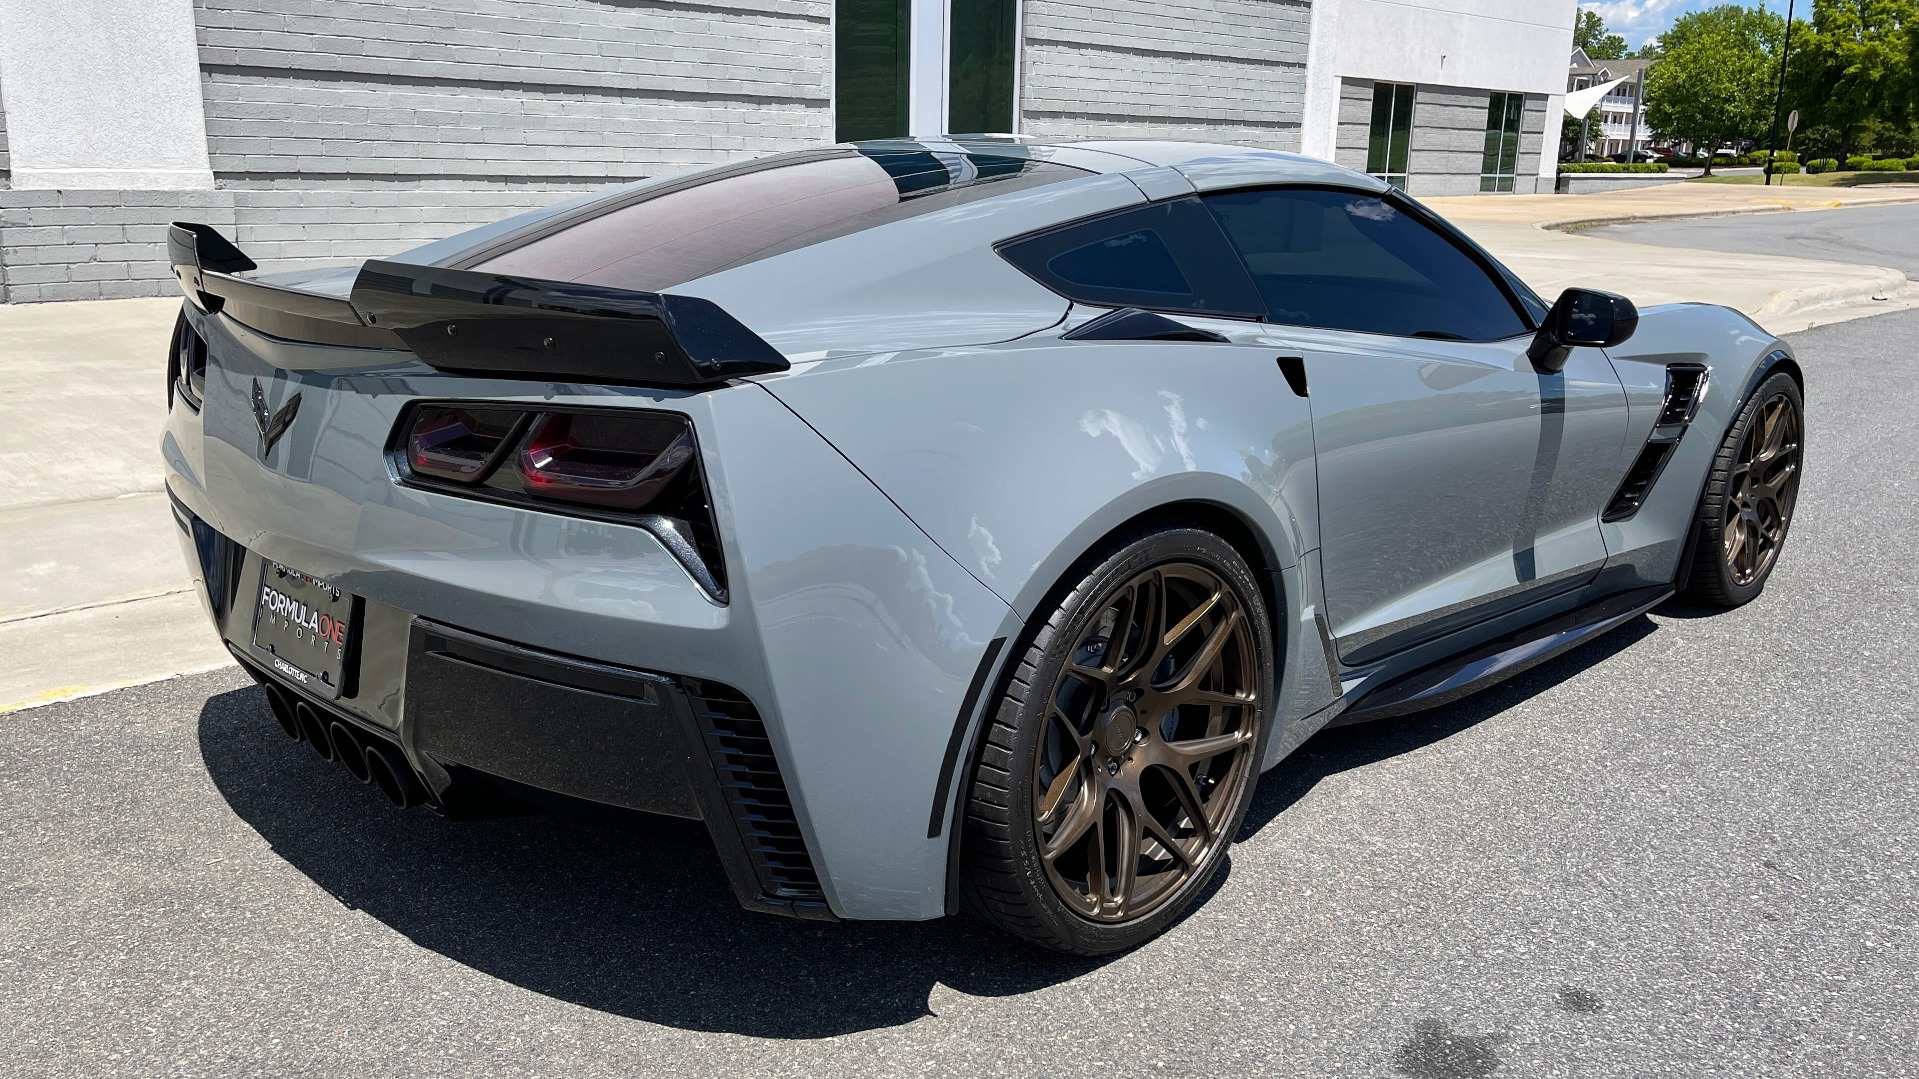 Used 2019 Chevrolet CORVETTE GRAND SPORT 3LT / SUPERCHARGED 6.2L V8 / NAV / REARVIEW for sale Sold at Formula Imports in Charlotte NC 28227 3